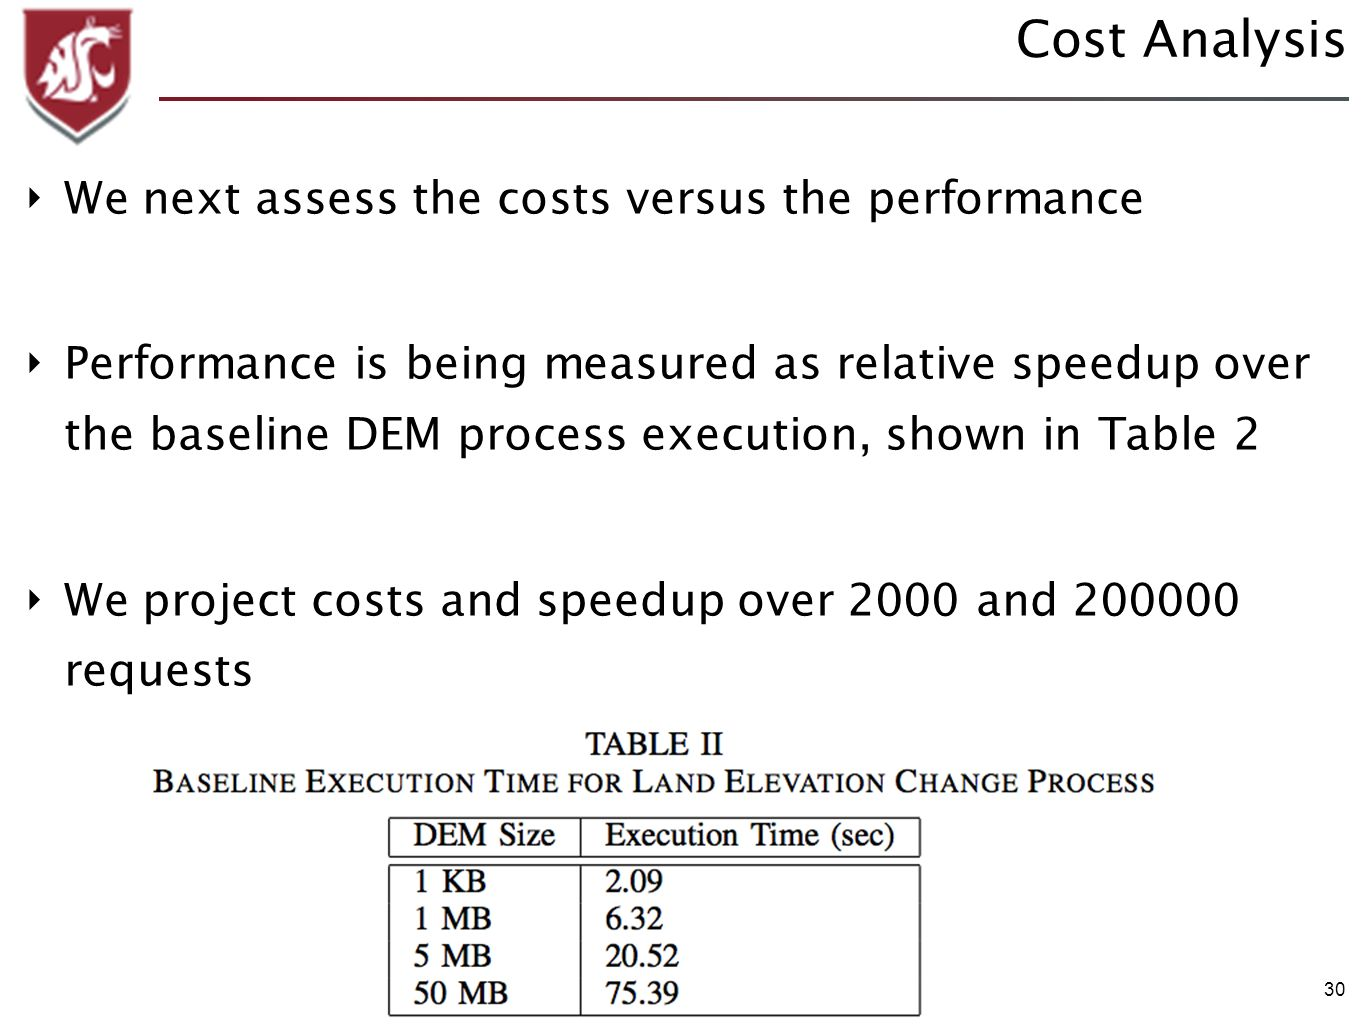 30 Cost Analysis We next assess the costs versus the performance Performance is being measured as relative speedup over the baseline DEM process execution, shown in Table 2 We project costs and speedup over 2000 and requests